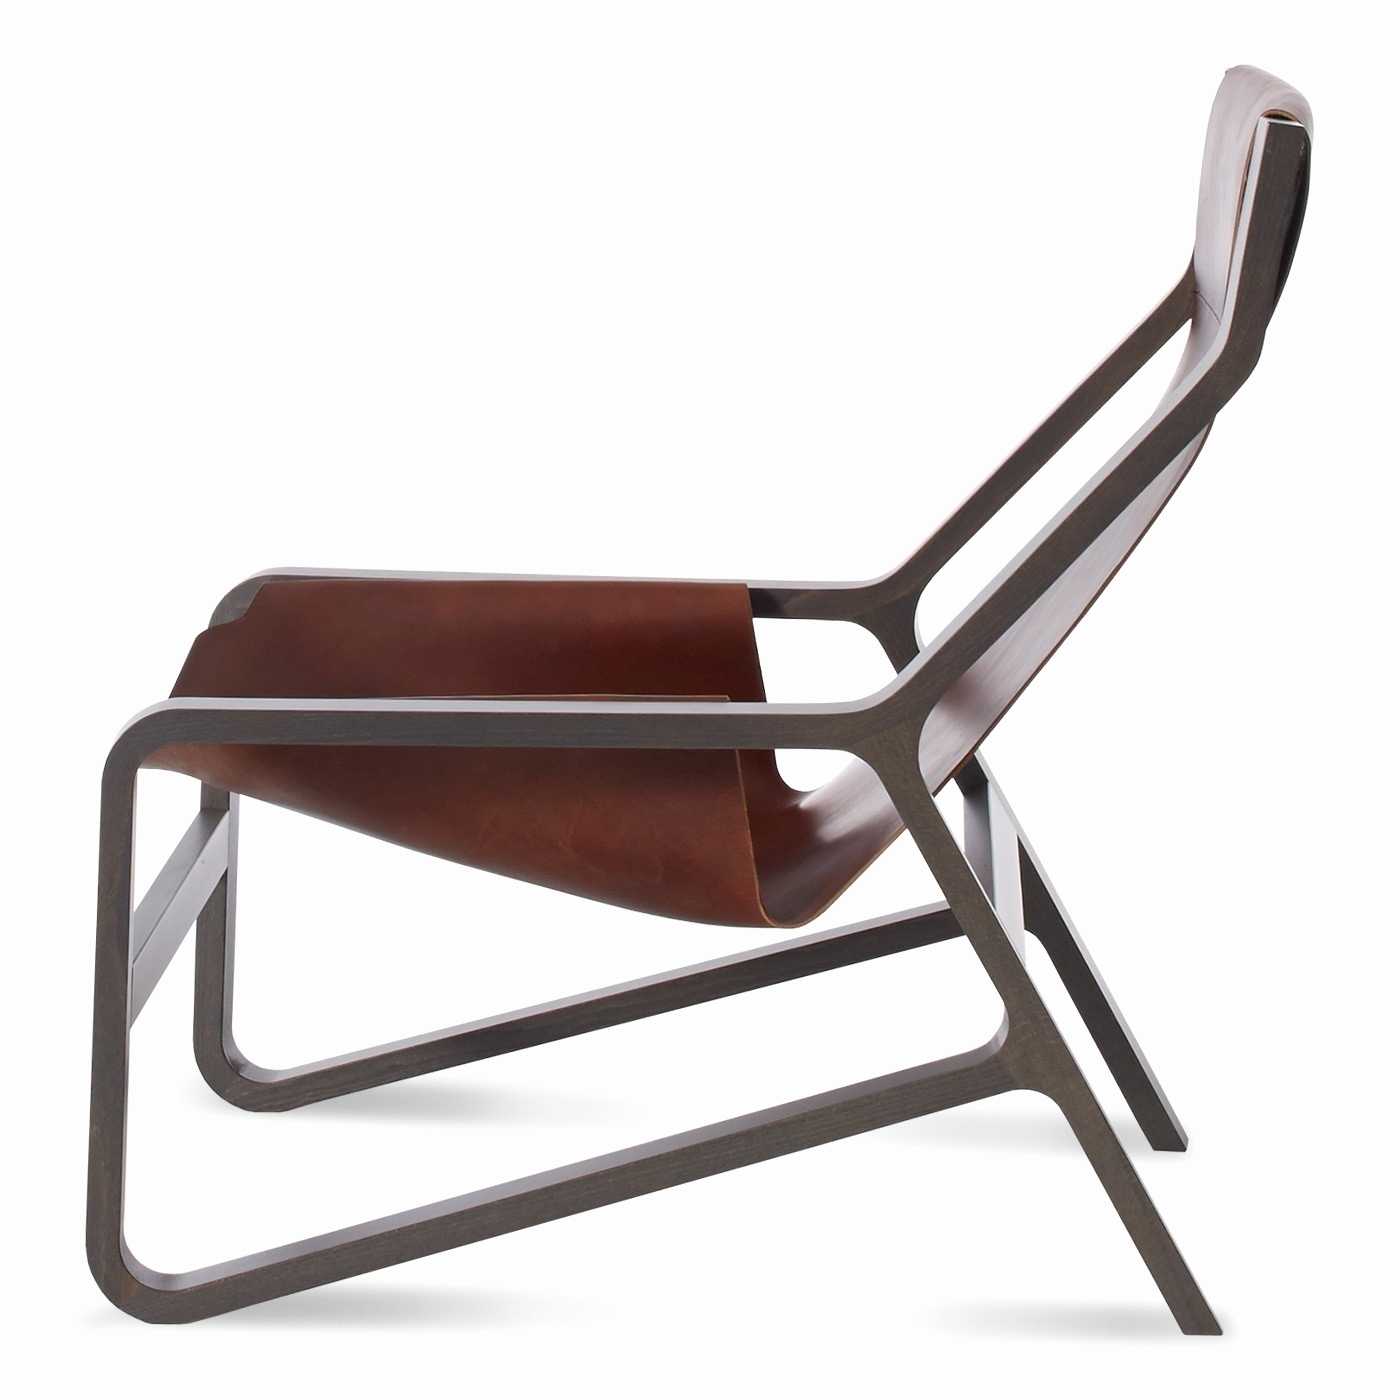 Home Regarding Widely Used Chaise Lounge Chairs At Big Lots (View 10 of 15)